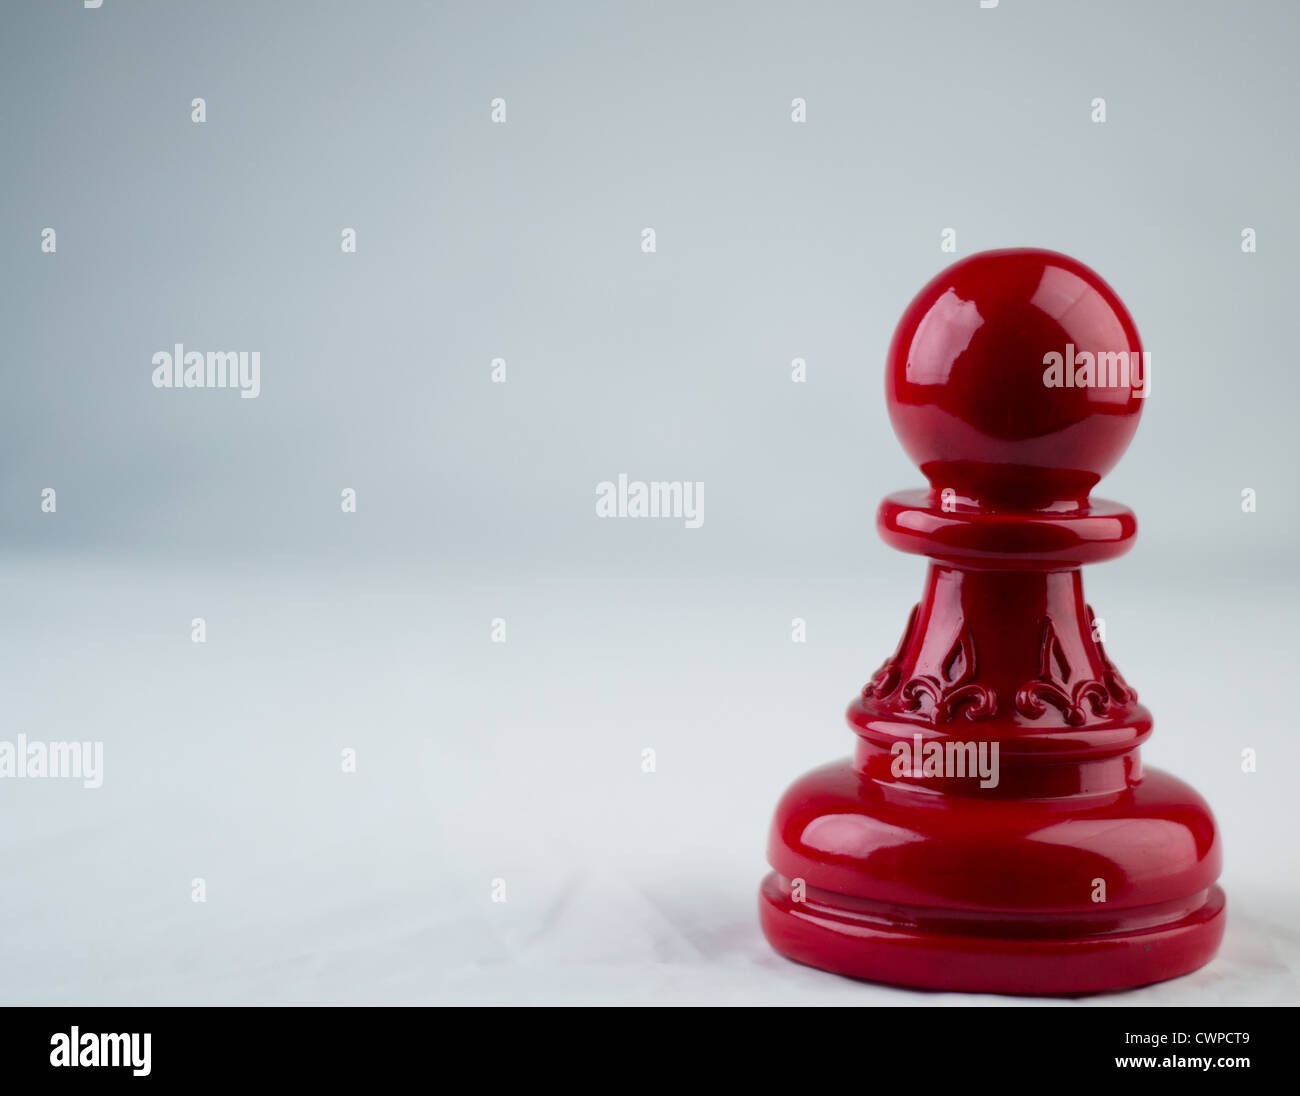 Pawn in Chess solitary game - Stock Image